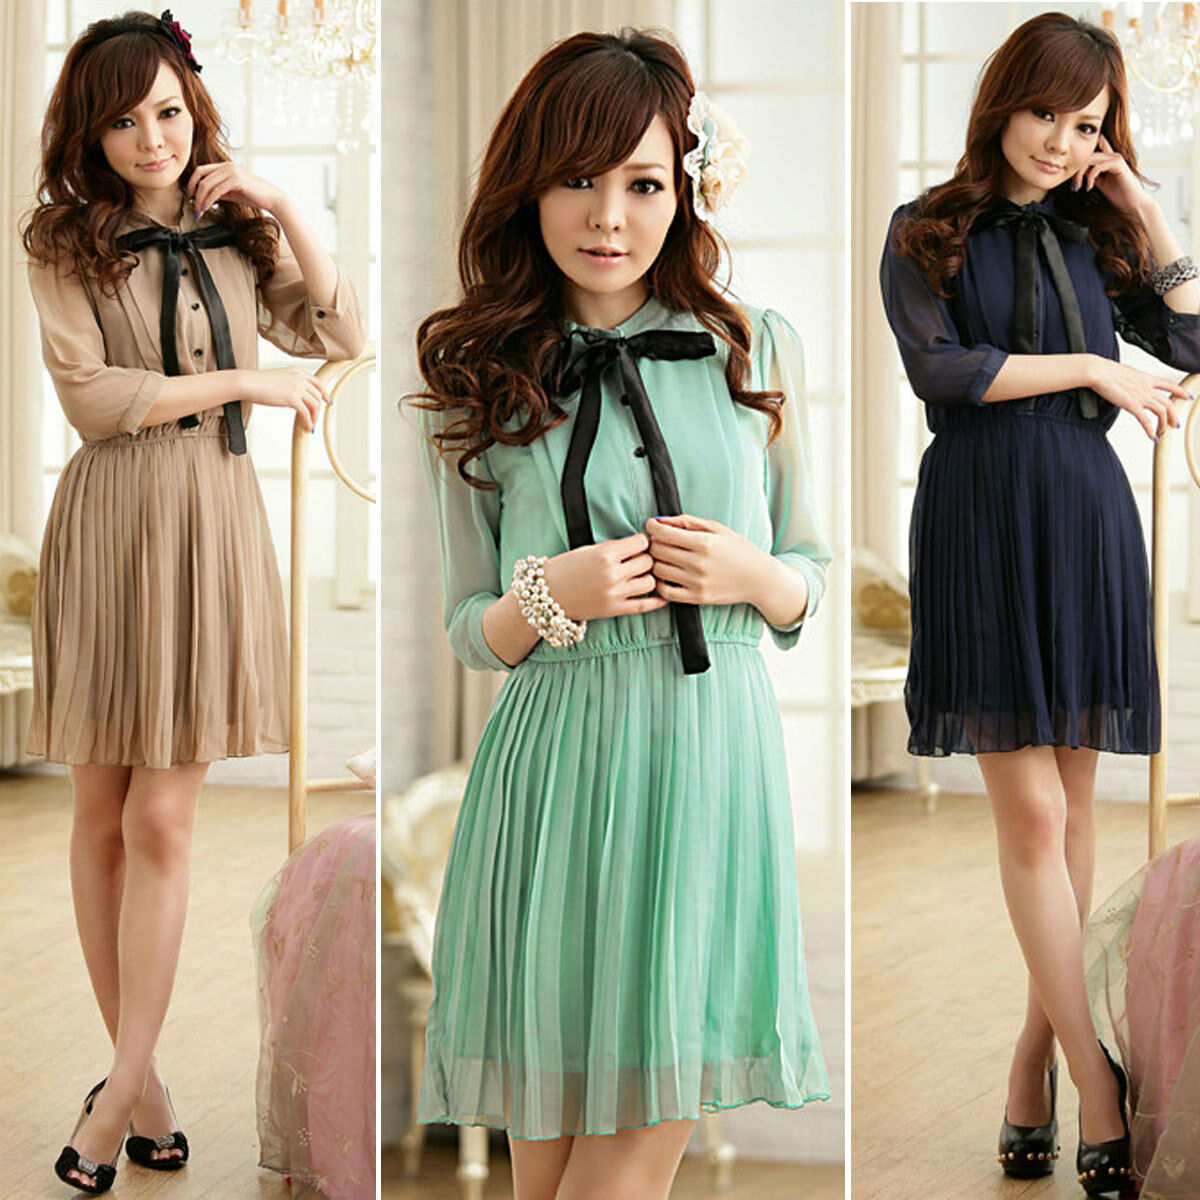 The dresses are high quality and very affordable. The maximum size is